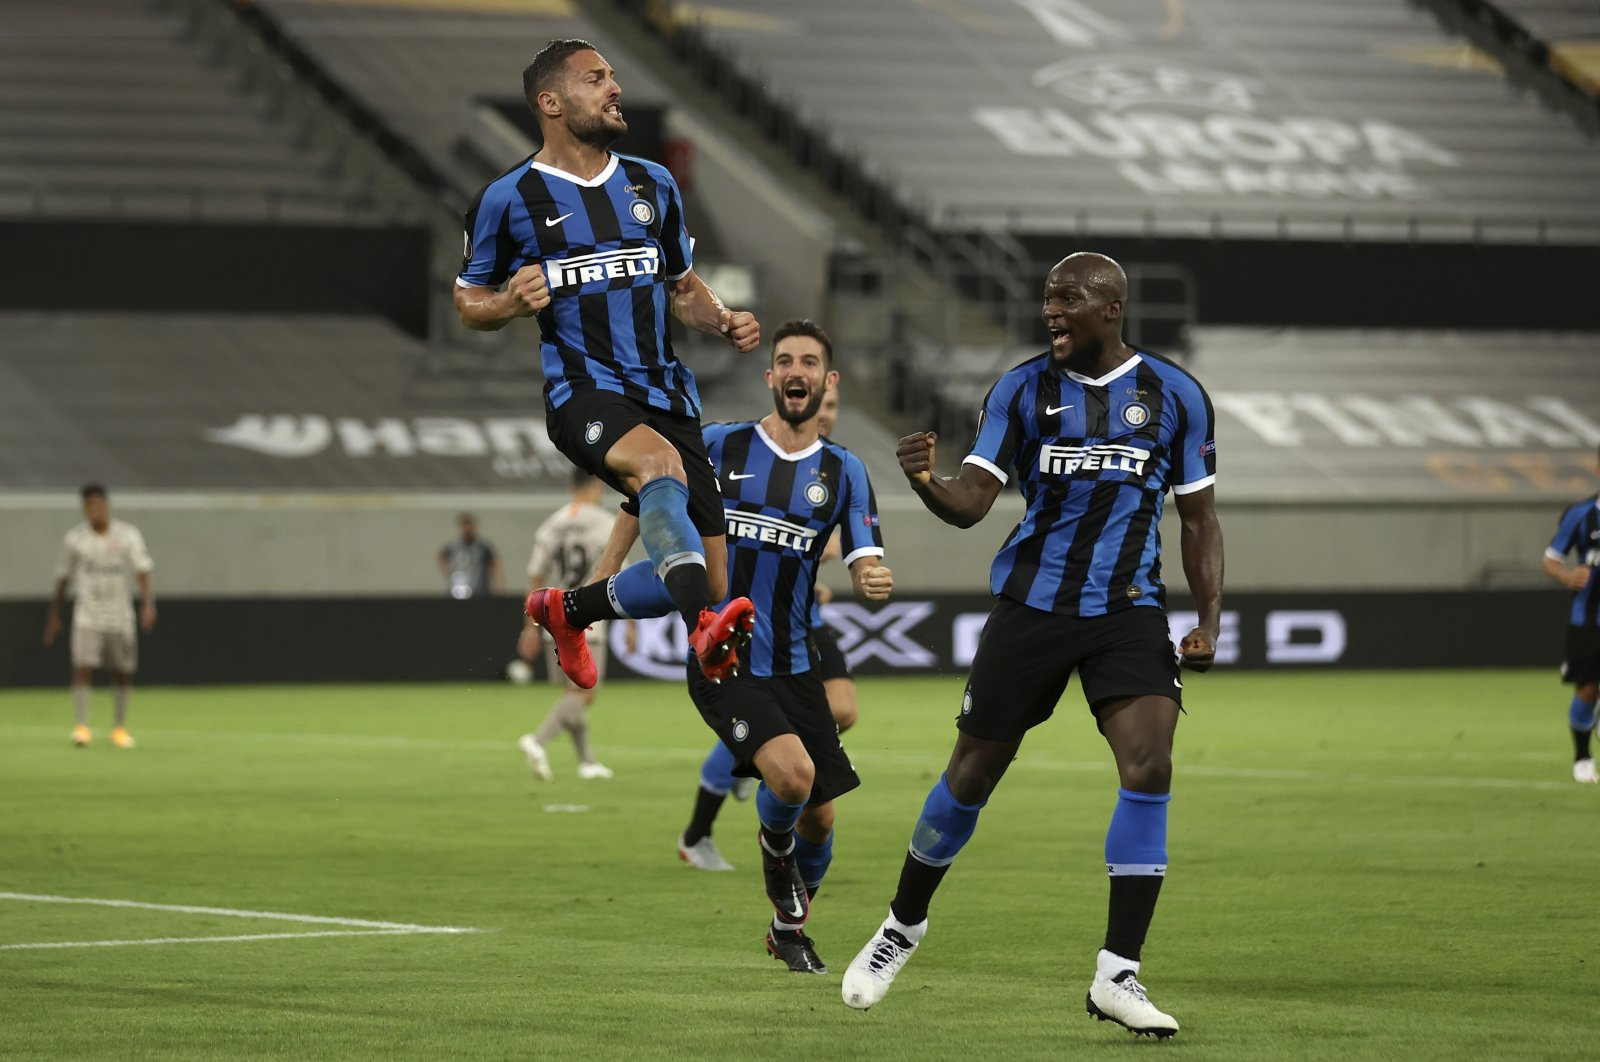 Inter Milan players celebrate a goal during the Europa League semifinal match against Shakhtar Donetsk in Dusseldorf, Germany, Aug. 17, 2020. (AP Photo)